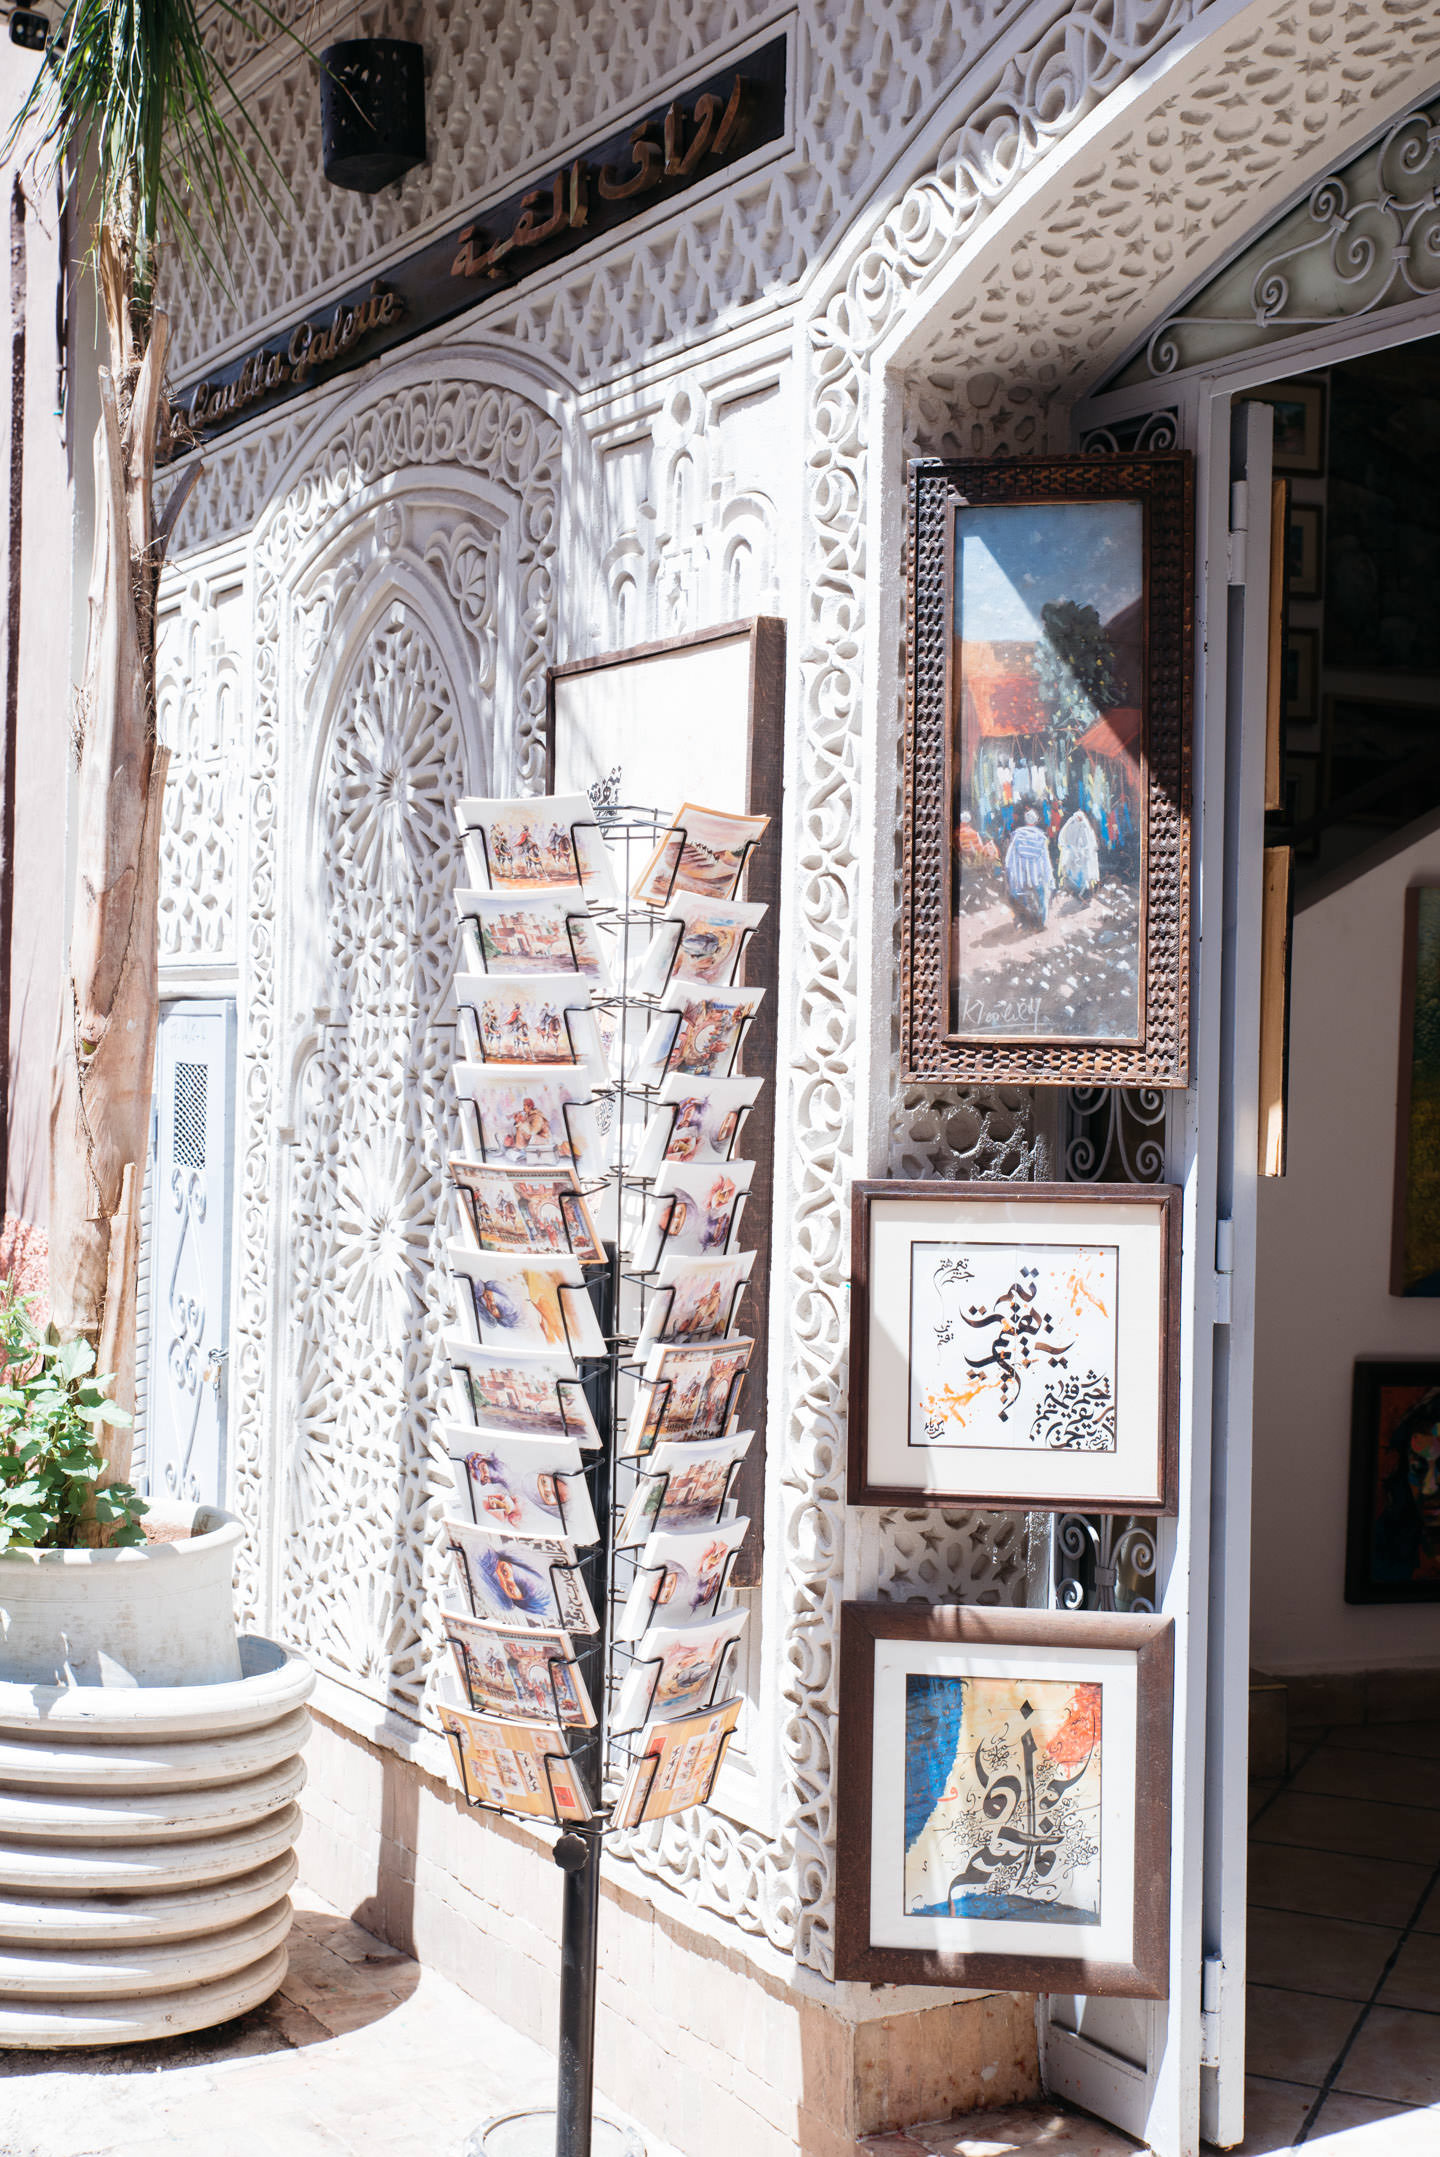 Blog-Mode-And-The-City-Lifestyle-Le-Madarin-Oriental-Marrakech-35